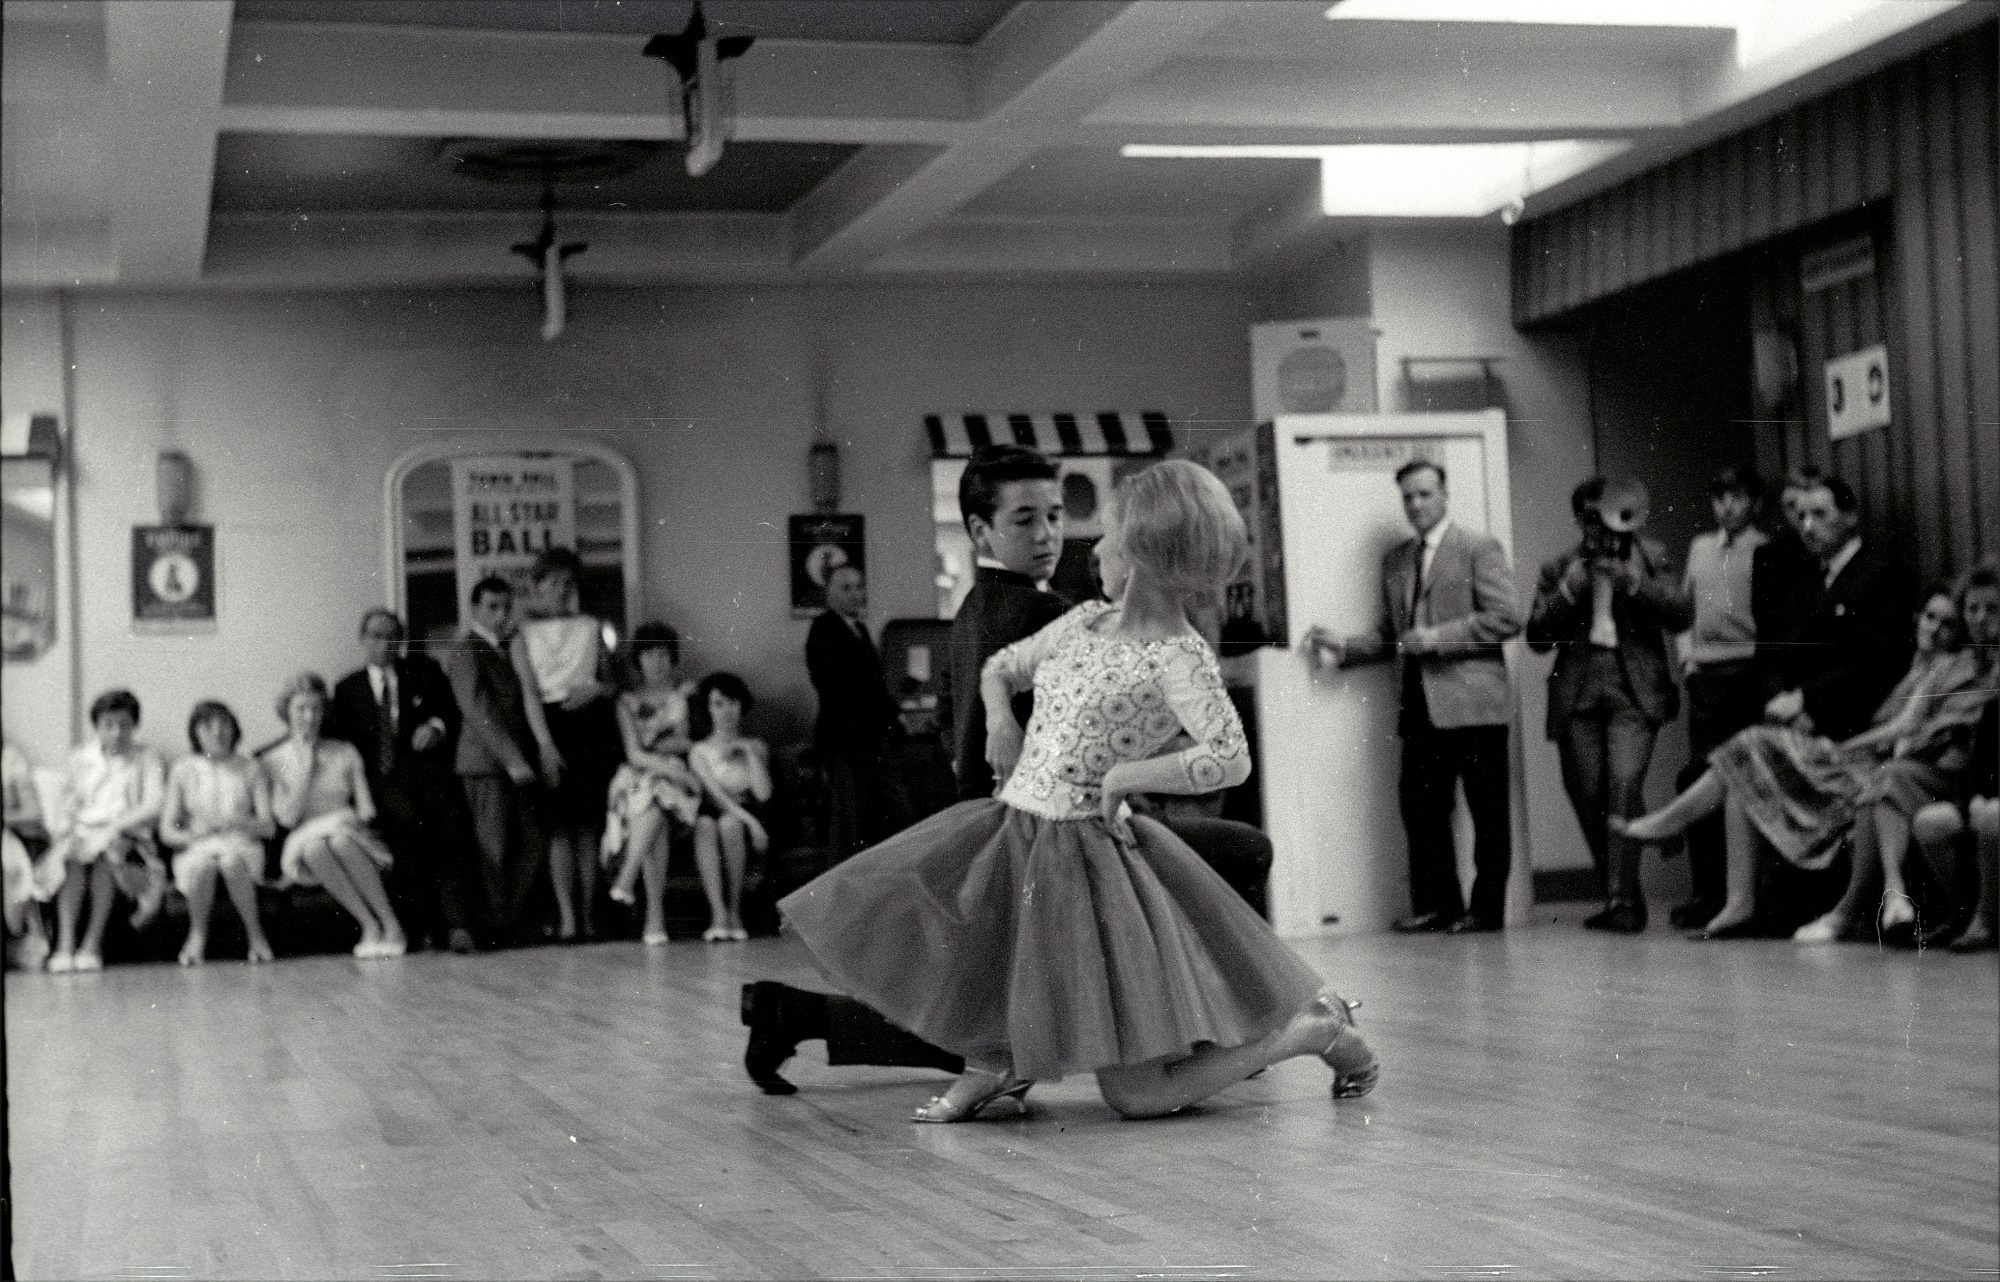 The Dancing Club is based on the story of Frank and Wynn Freeman. PIC: Colin Hill